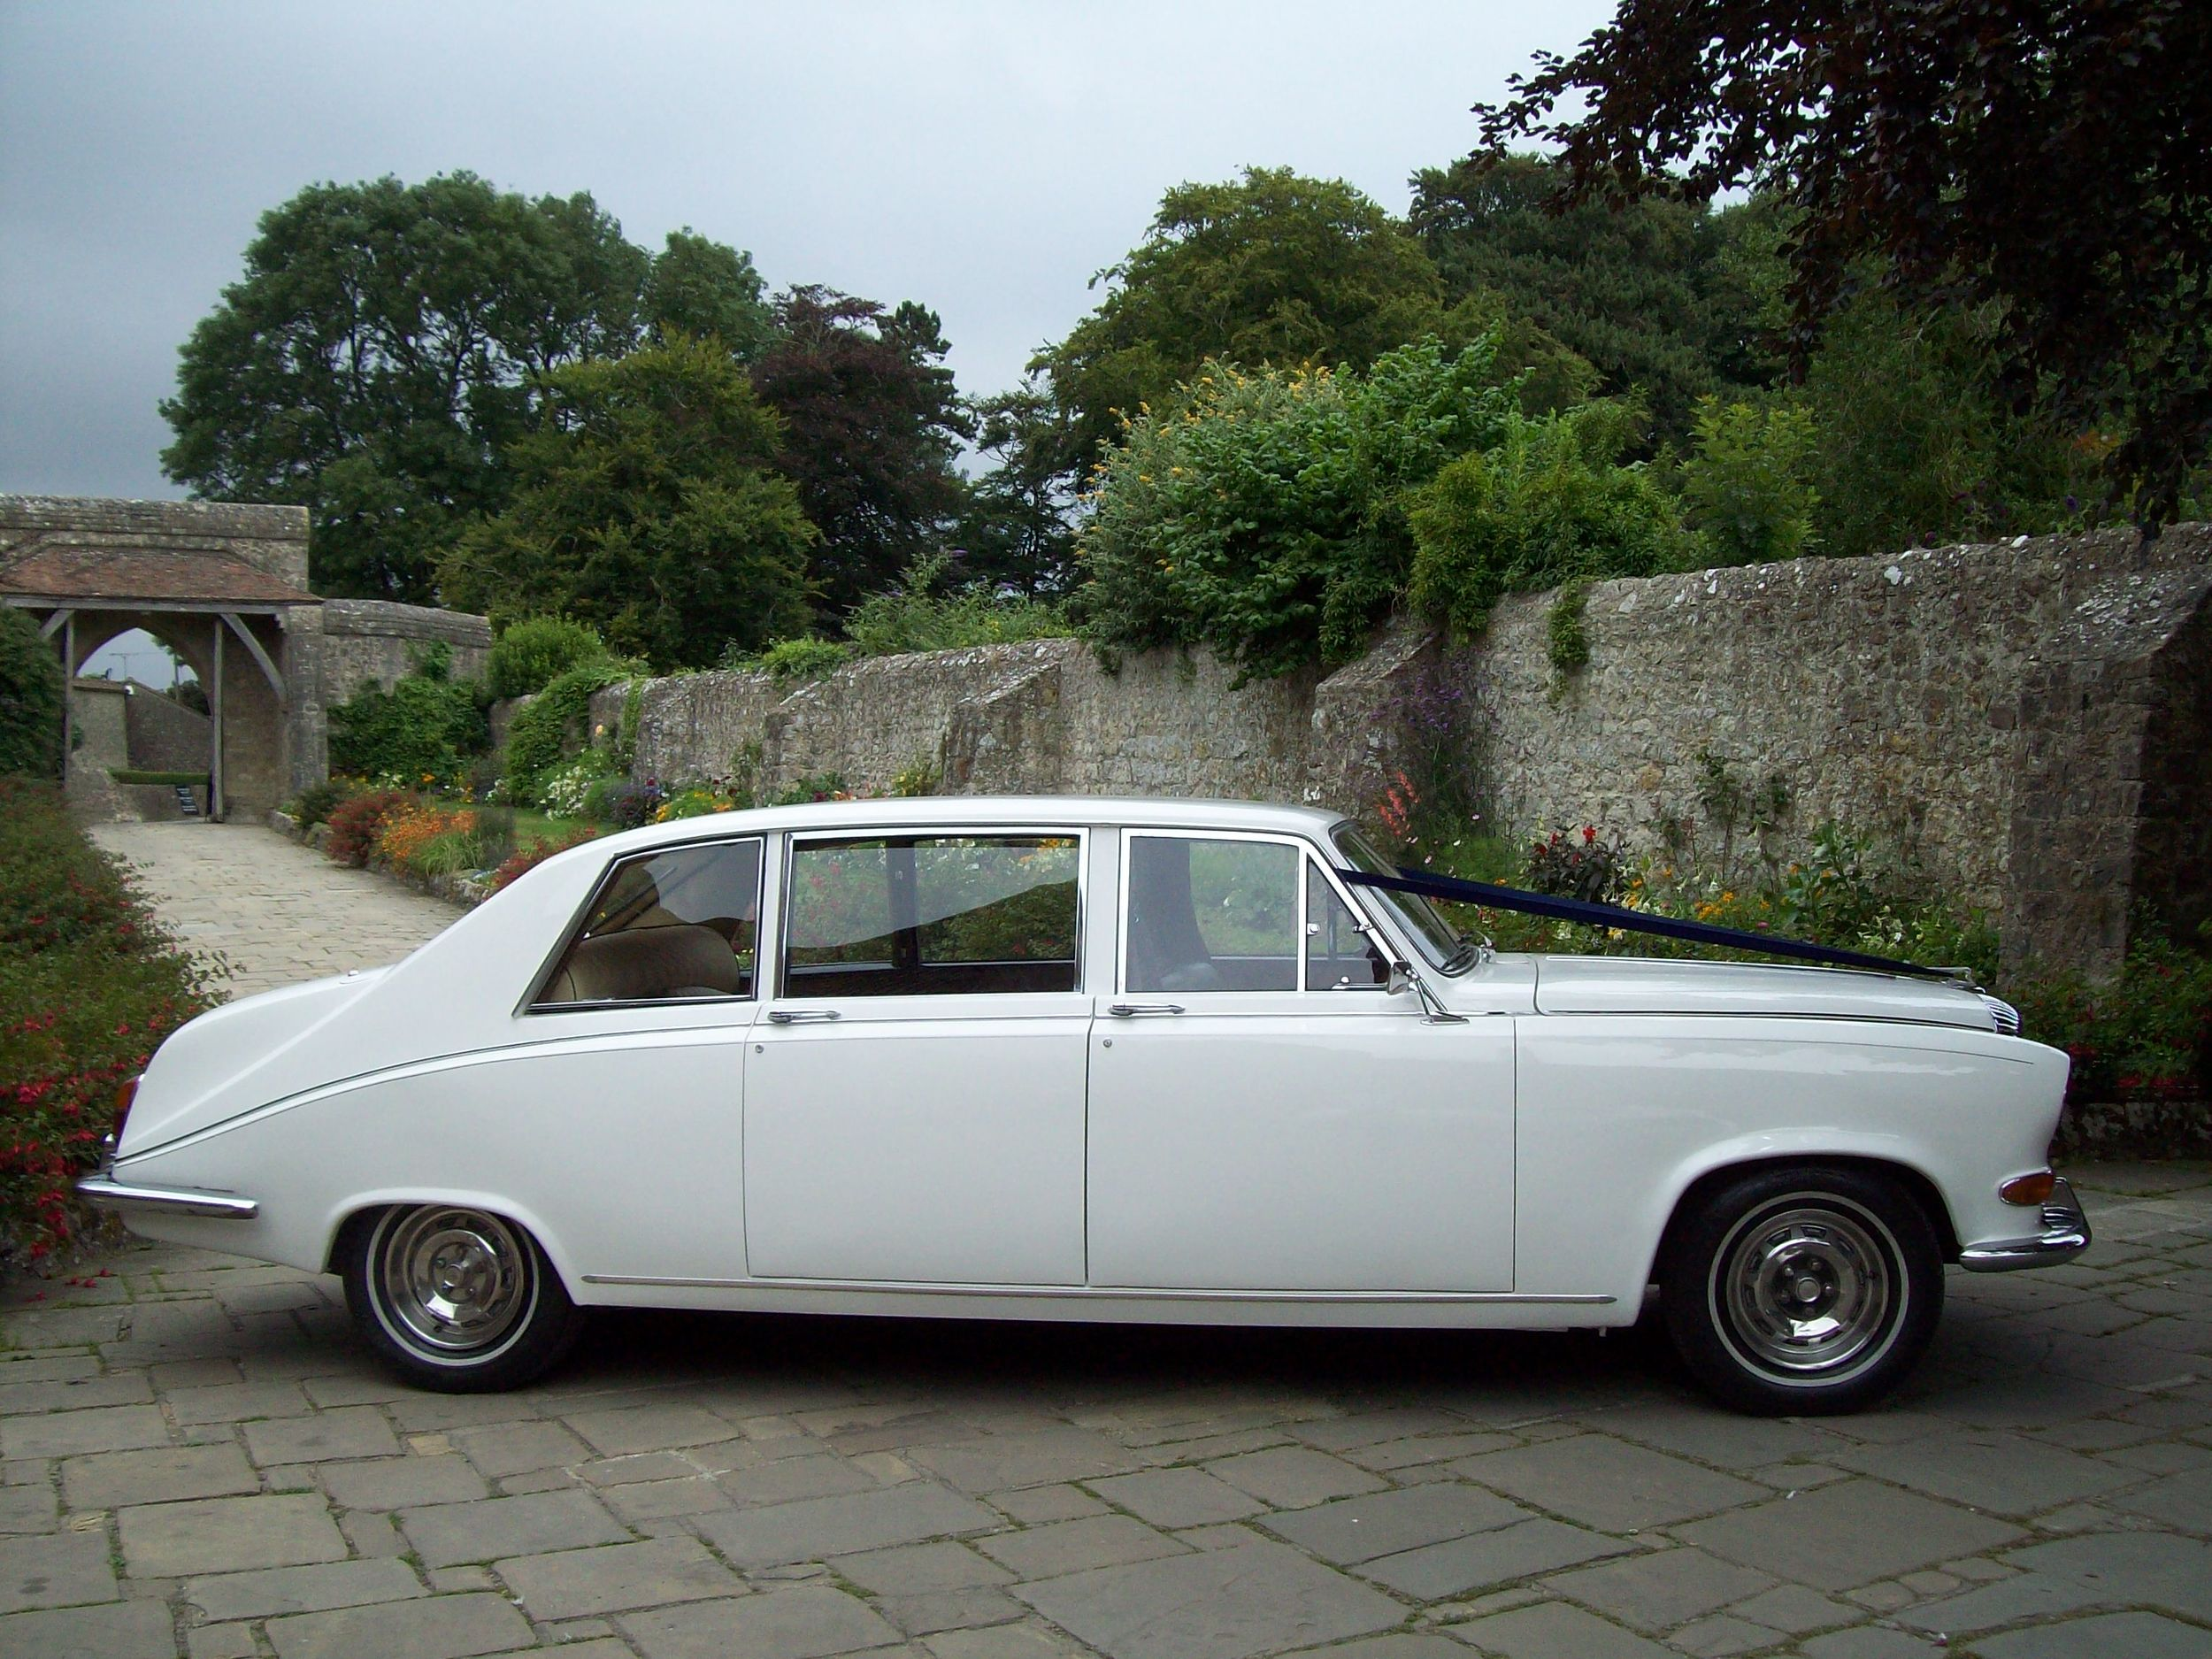 White Daimler DS Limousine 7 seats  Popular